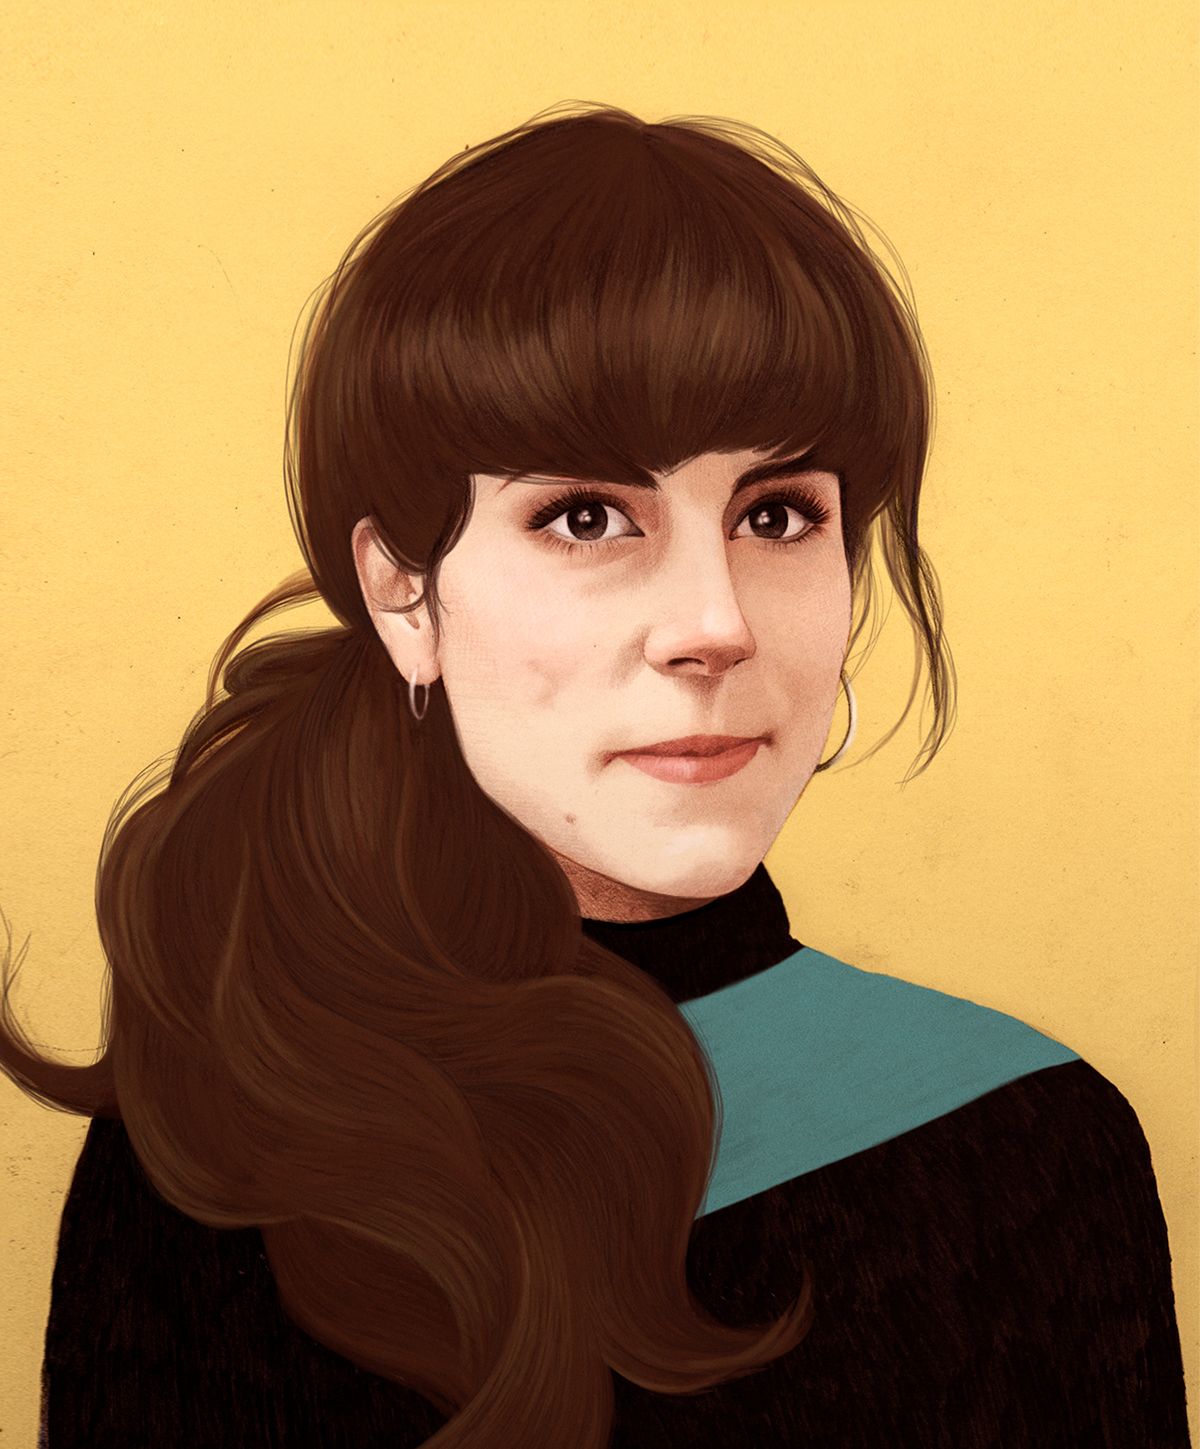 Illustration Portraits for Stylist Magazine by Mercedes deBellard